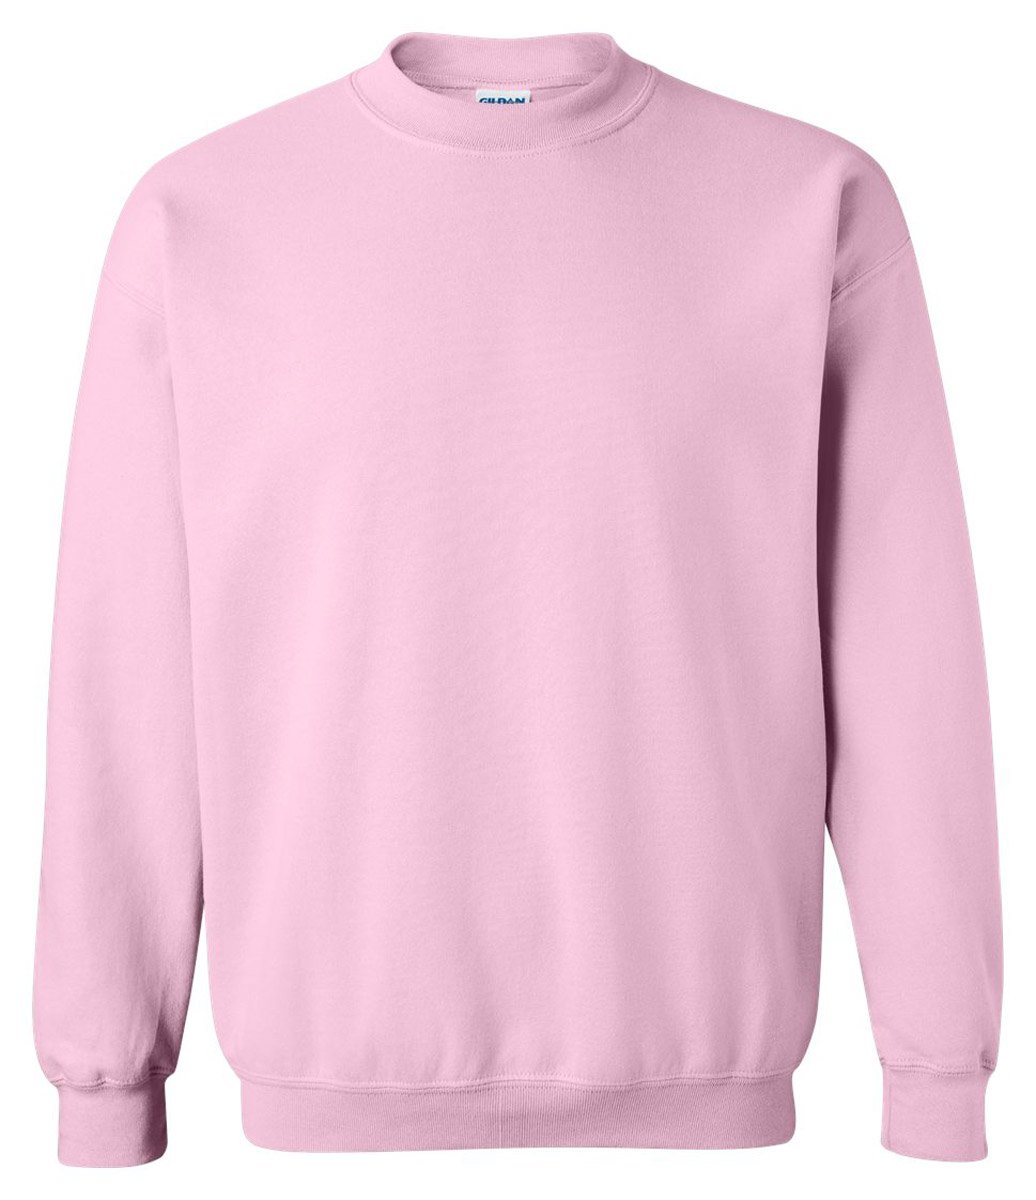 Gildan Heavy Blend Unisex Adult Crewneck Sweatshirt (M) (Light Pink) by Gildan